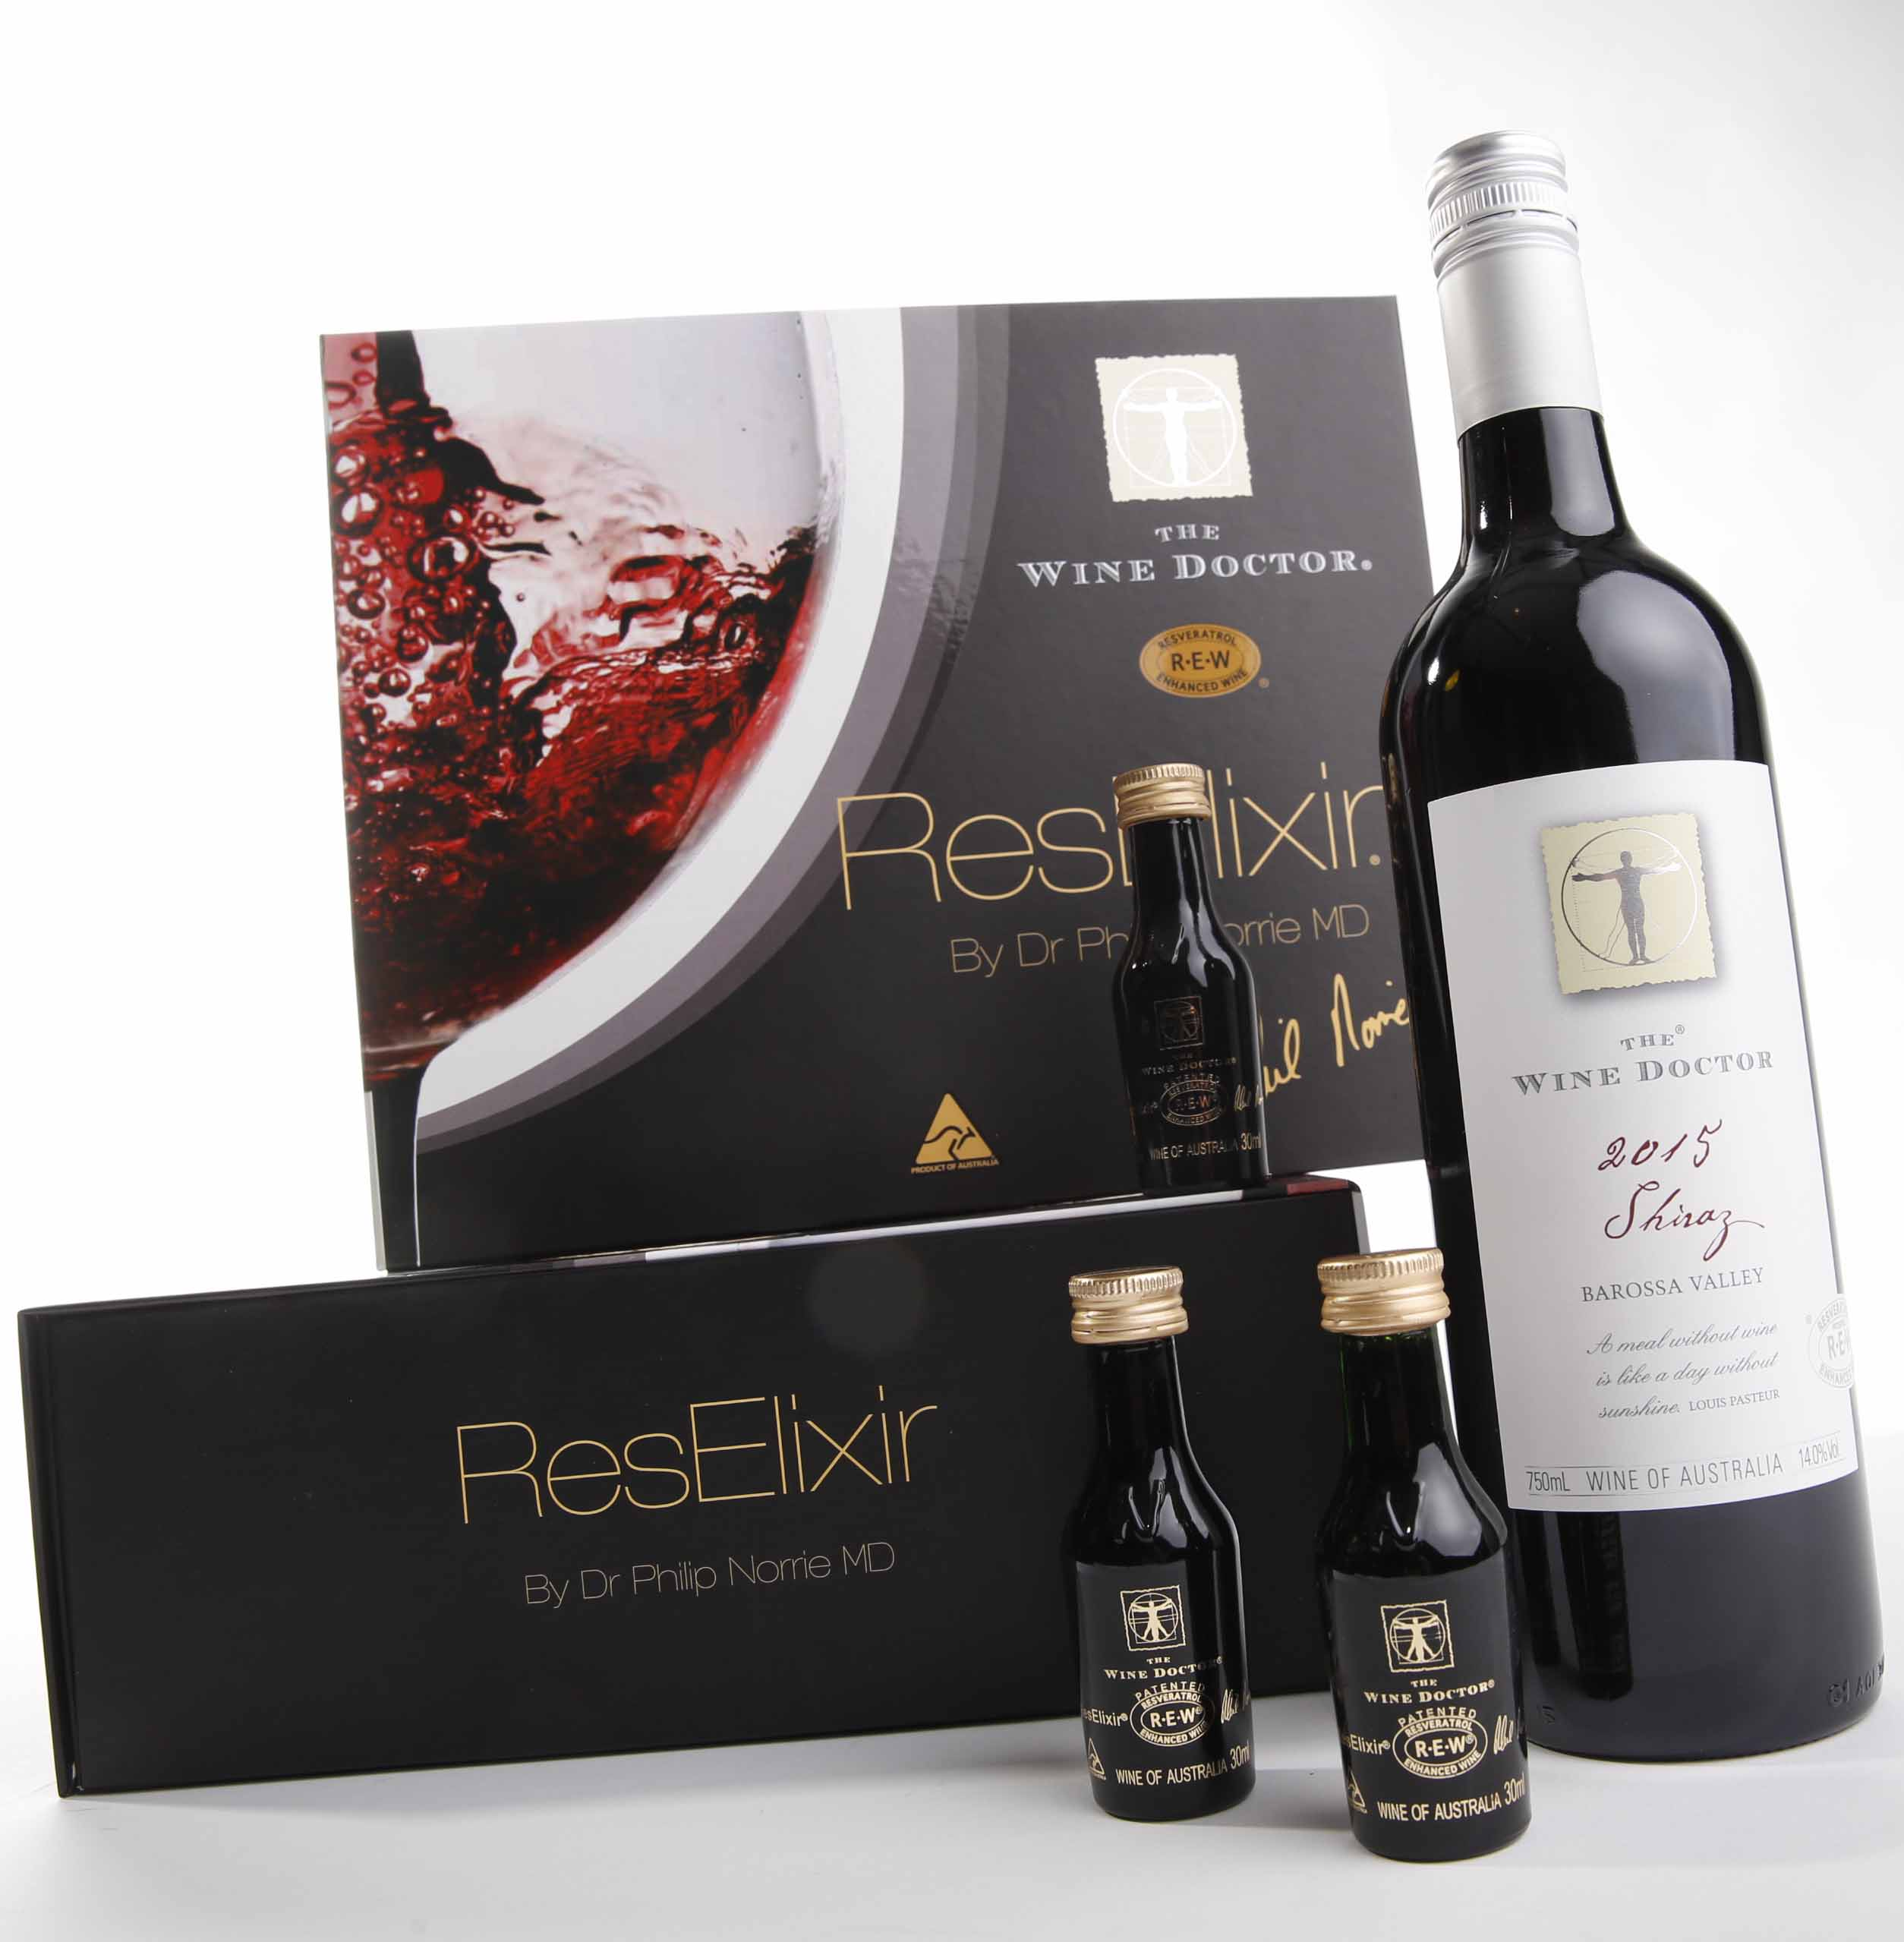 Resveratrol Enhanced Wine, the Wine Doctor